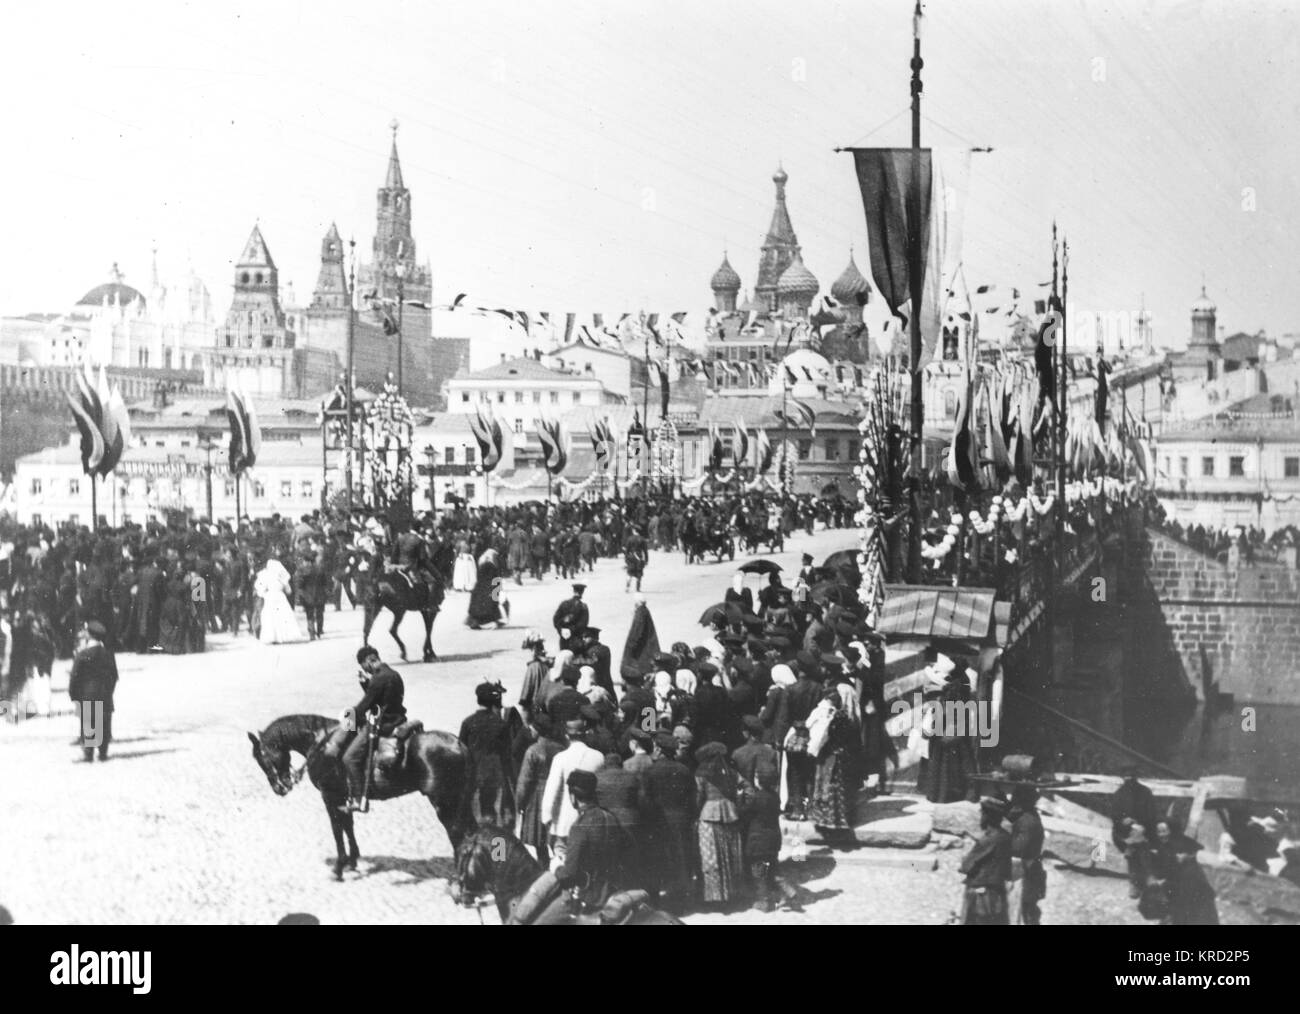 Tsar Nicholas II of Russia was coronated on the 26th of May 1896, this parade on the Kamenny Bridge in Moscow, is - Stock Image